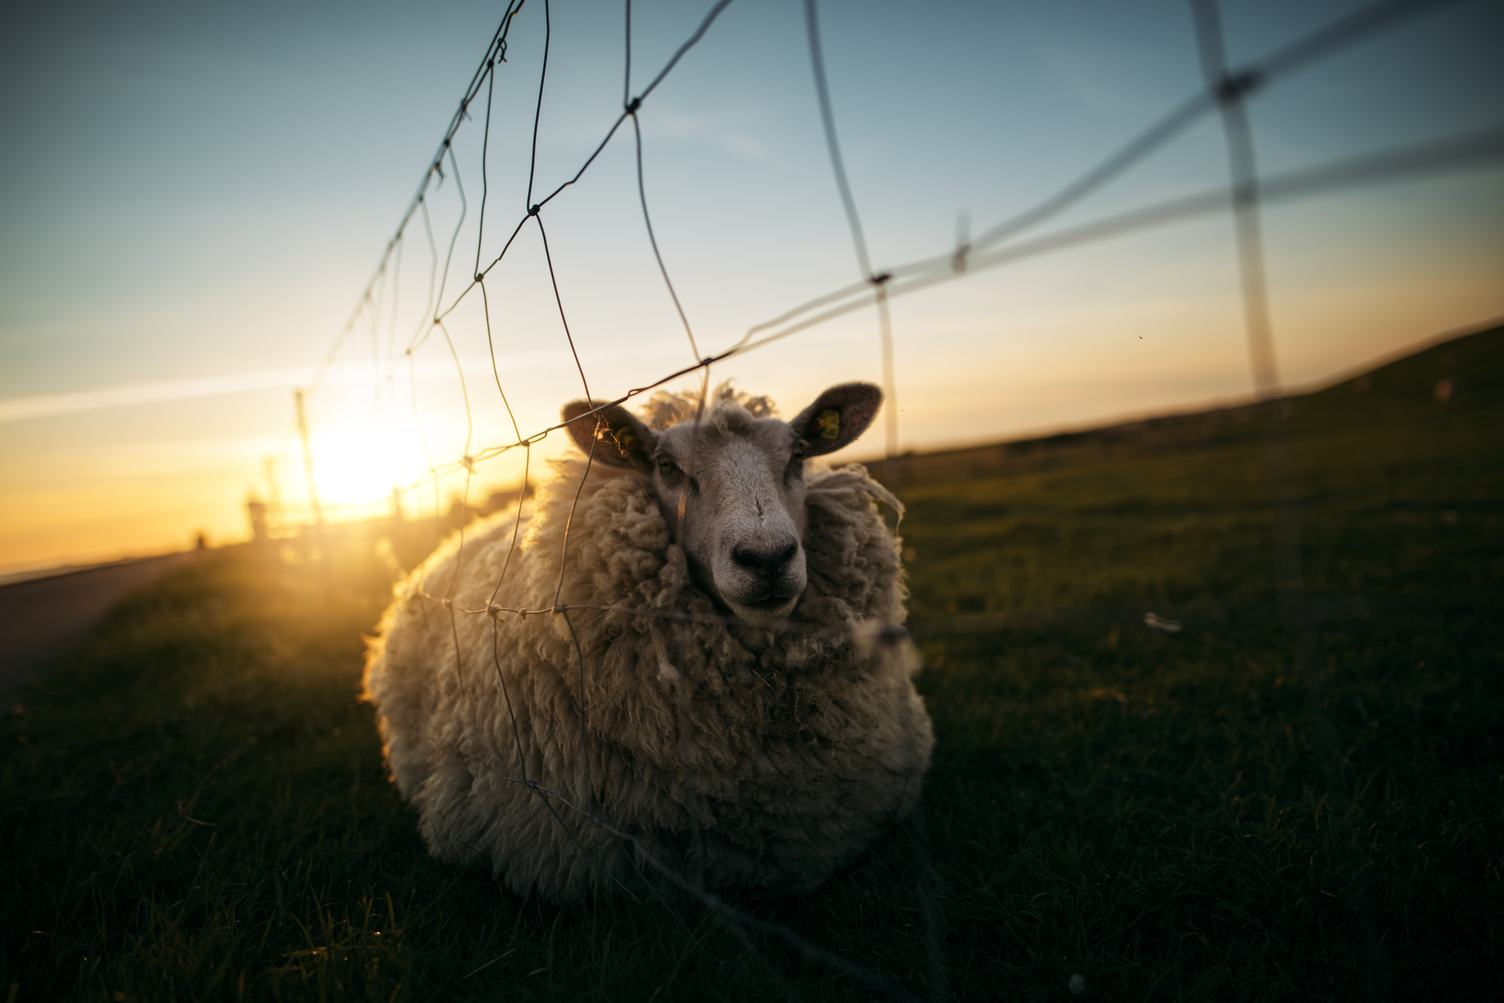 Sheep Near a Fence at Sunset